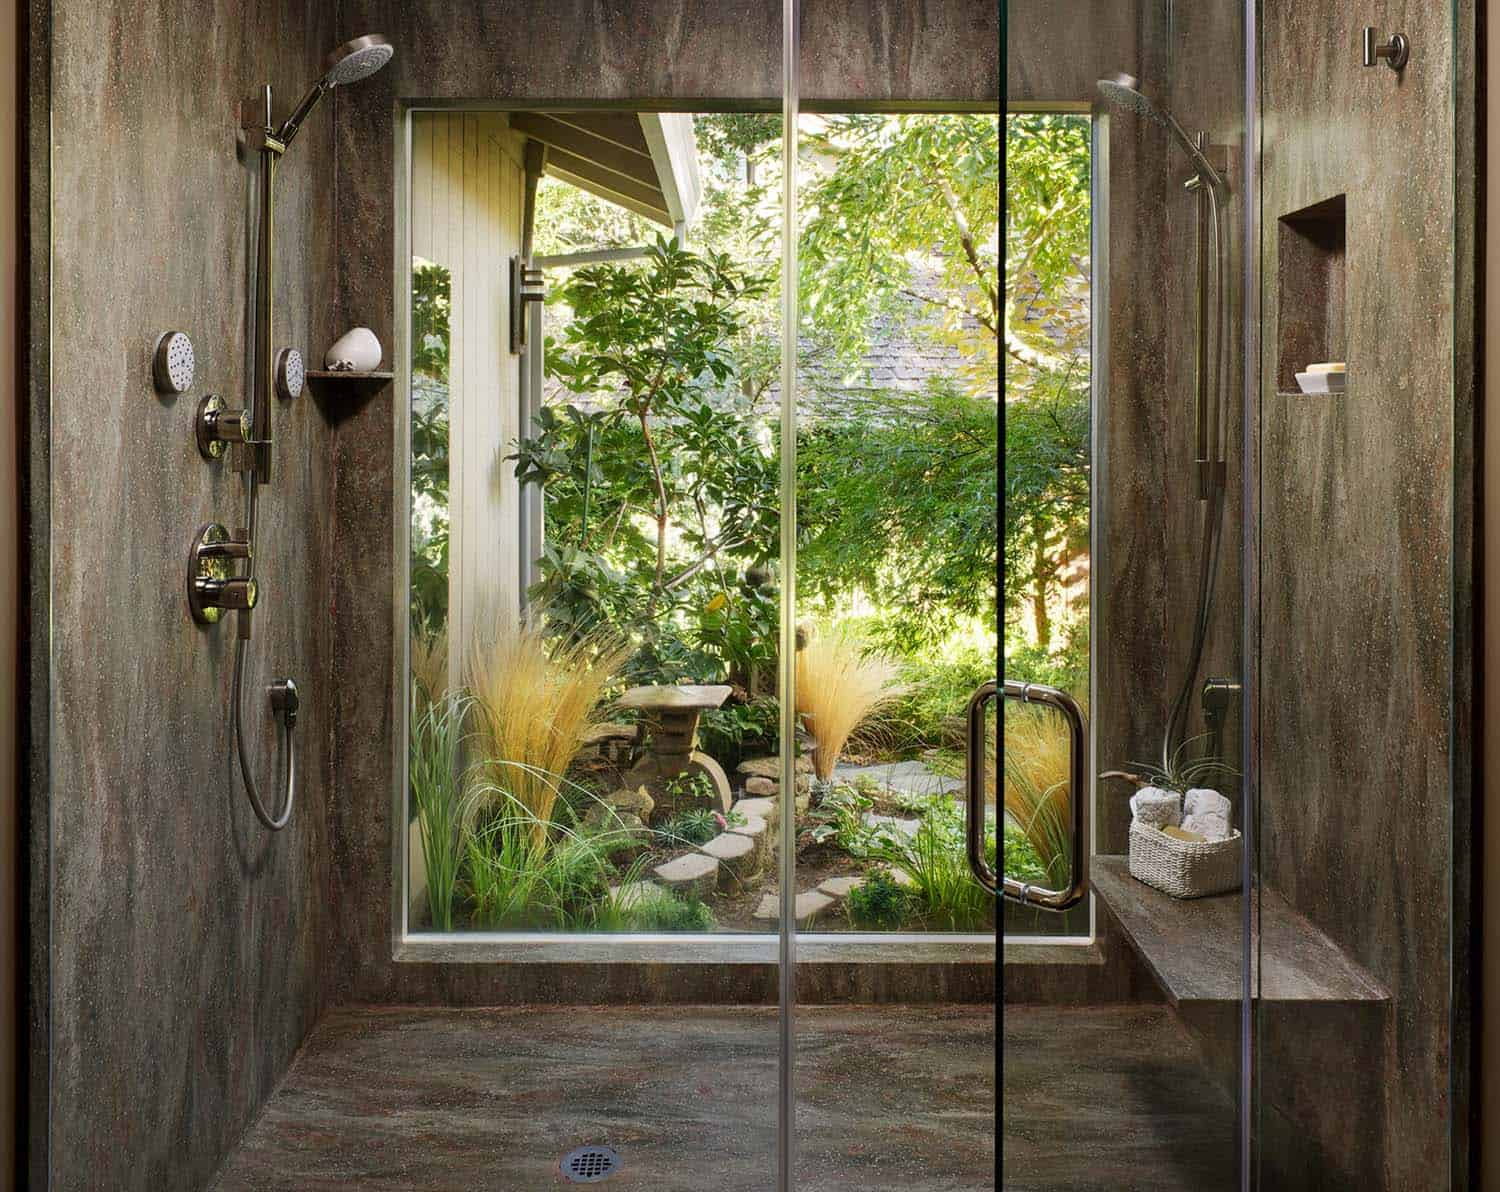 Inspiring Bathrooms Integrating Lush Gardens-16-1 Kindesign